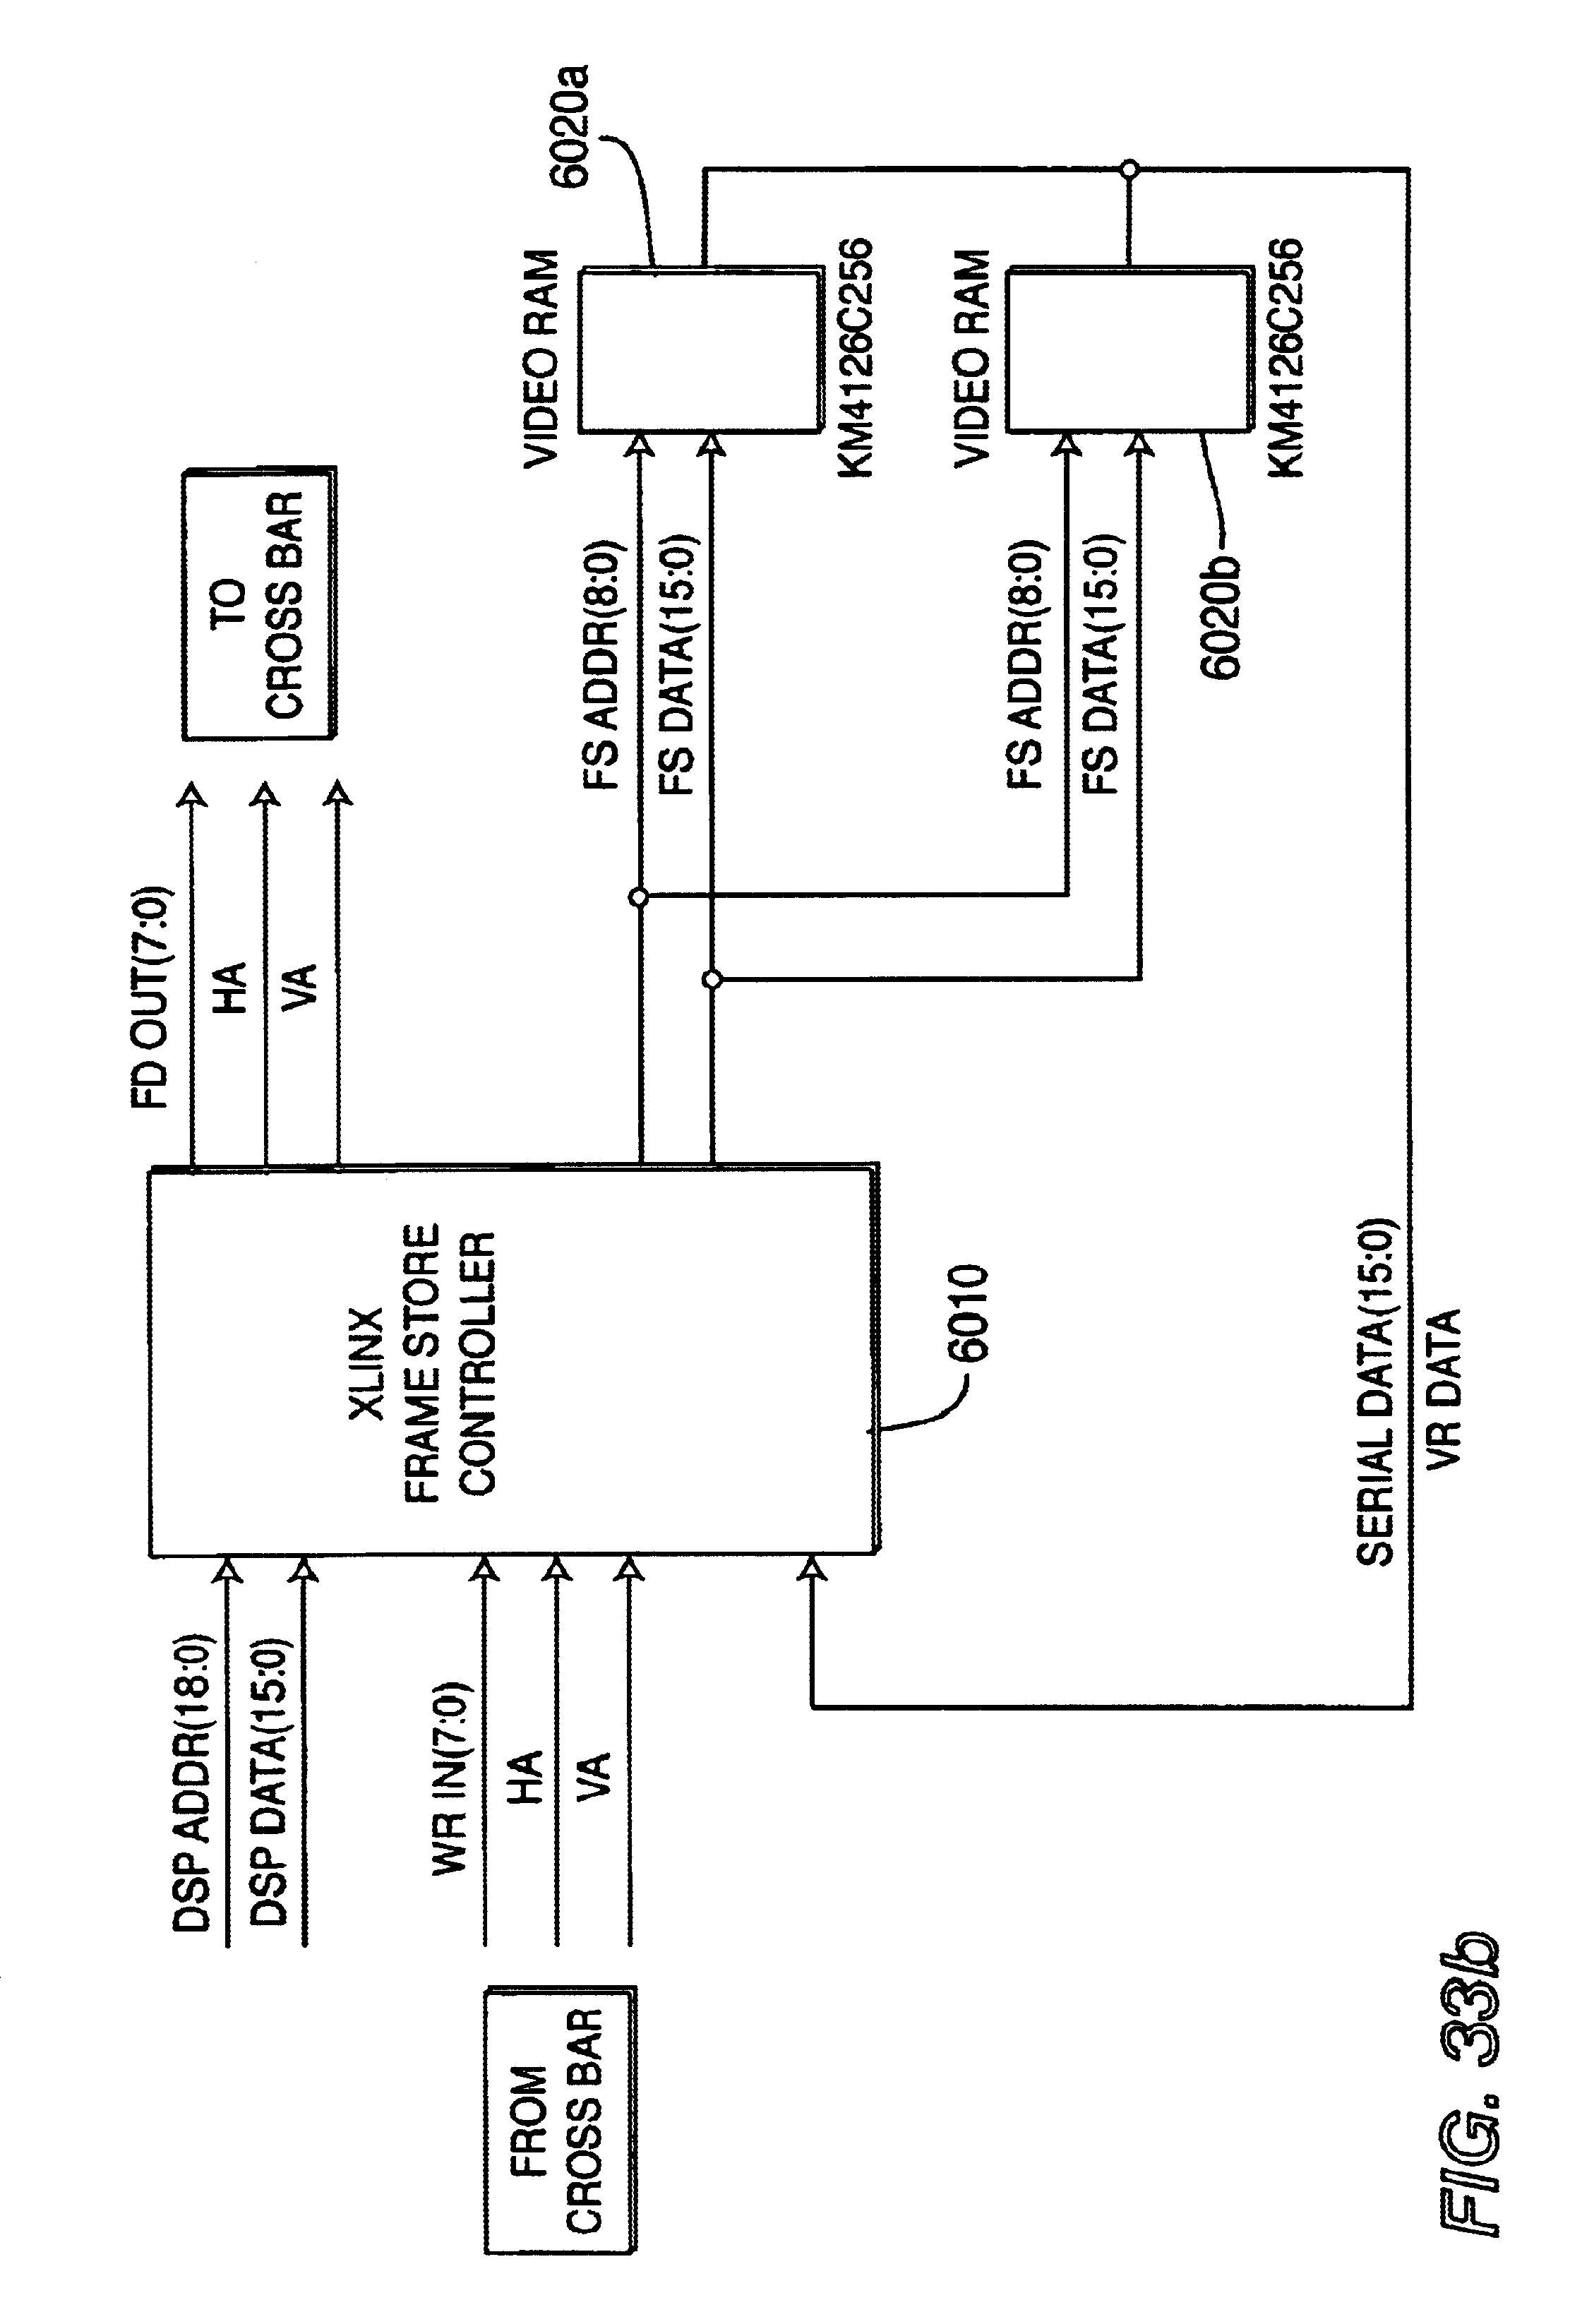 Calculator Circuit Under A Black Epoxy Blob Patent Us 6714665 B1 Images